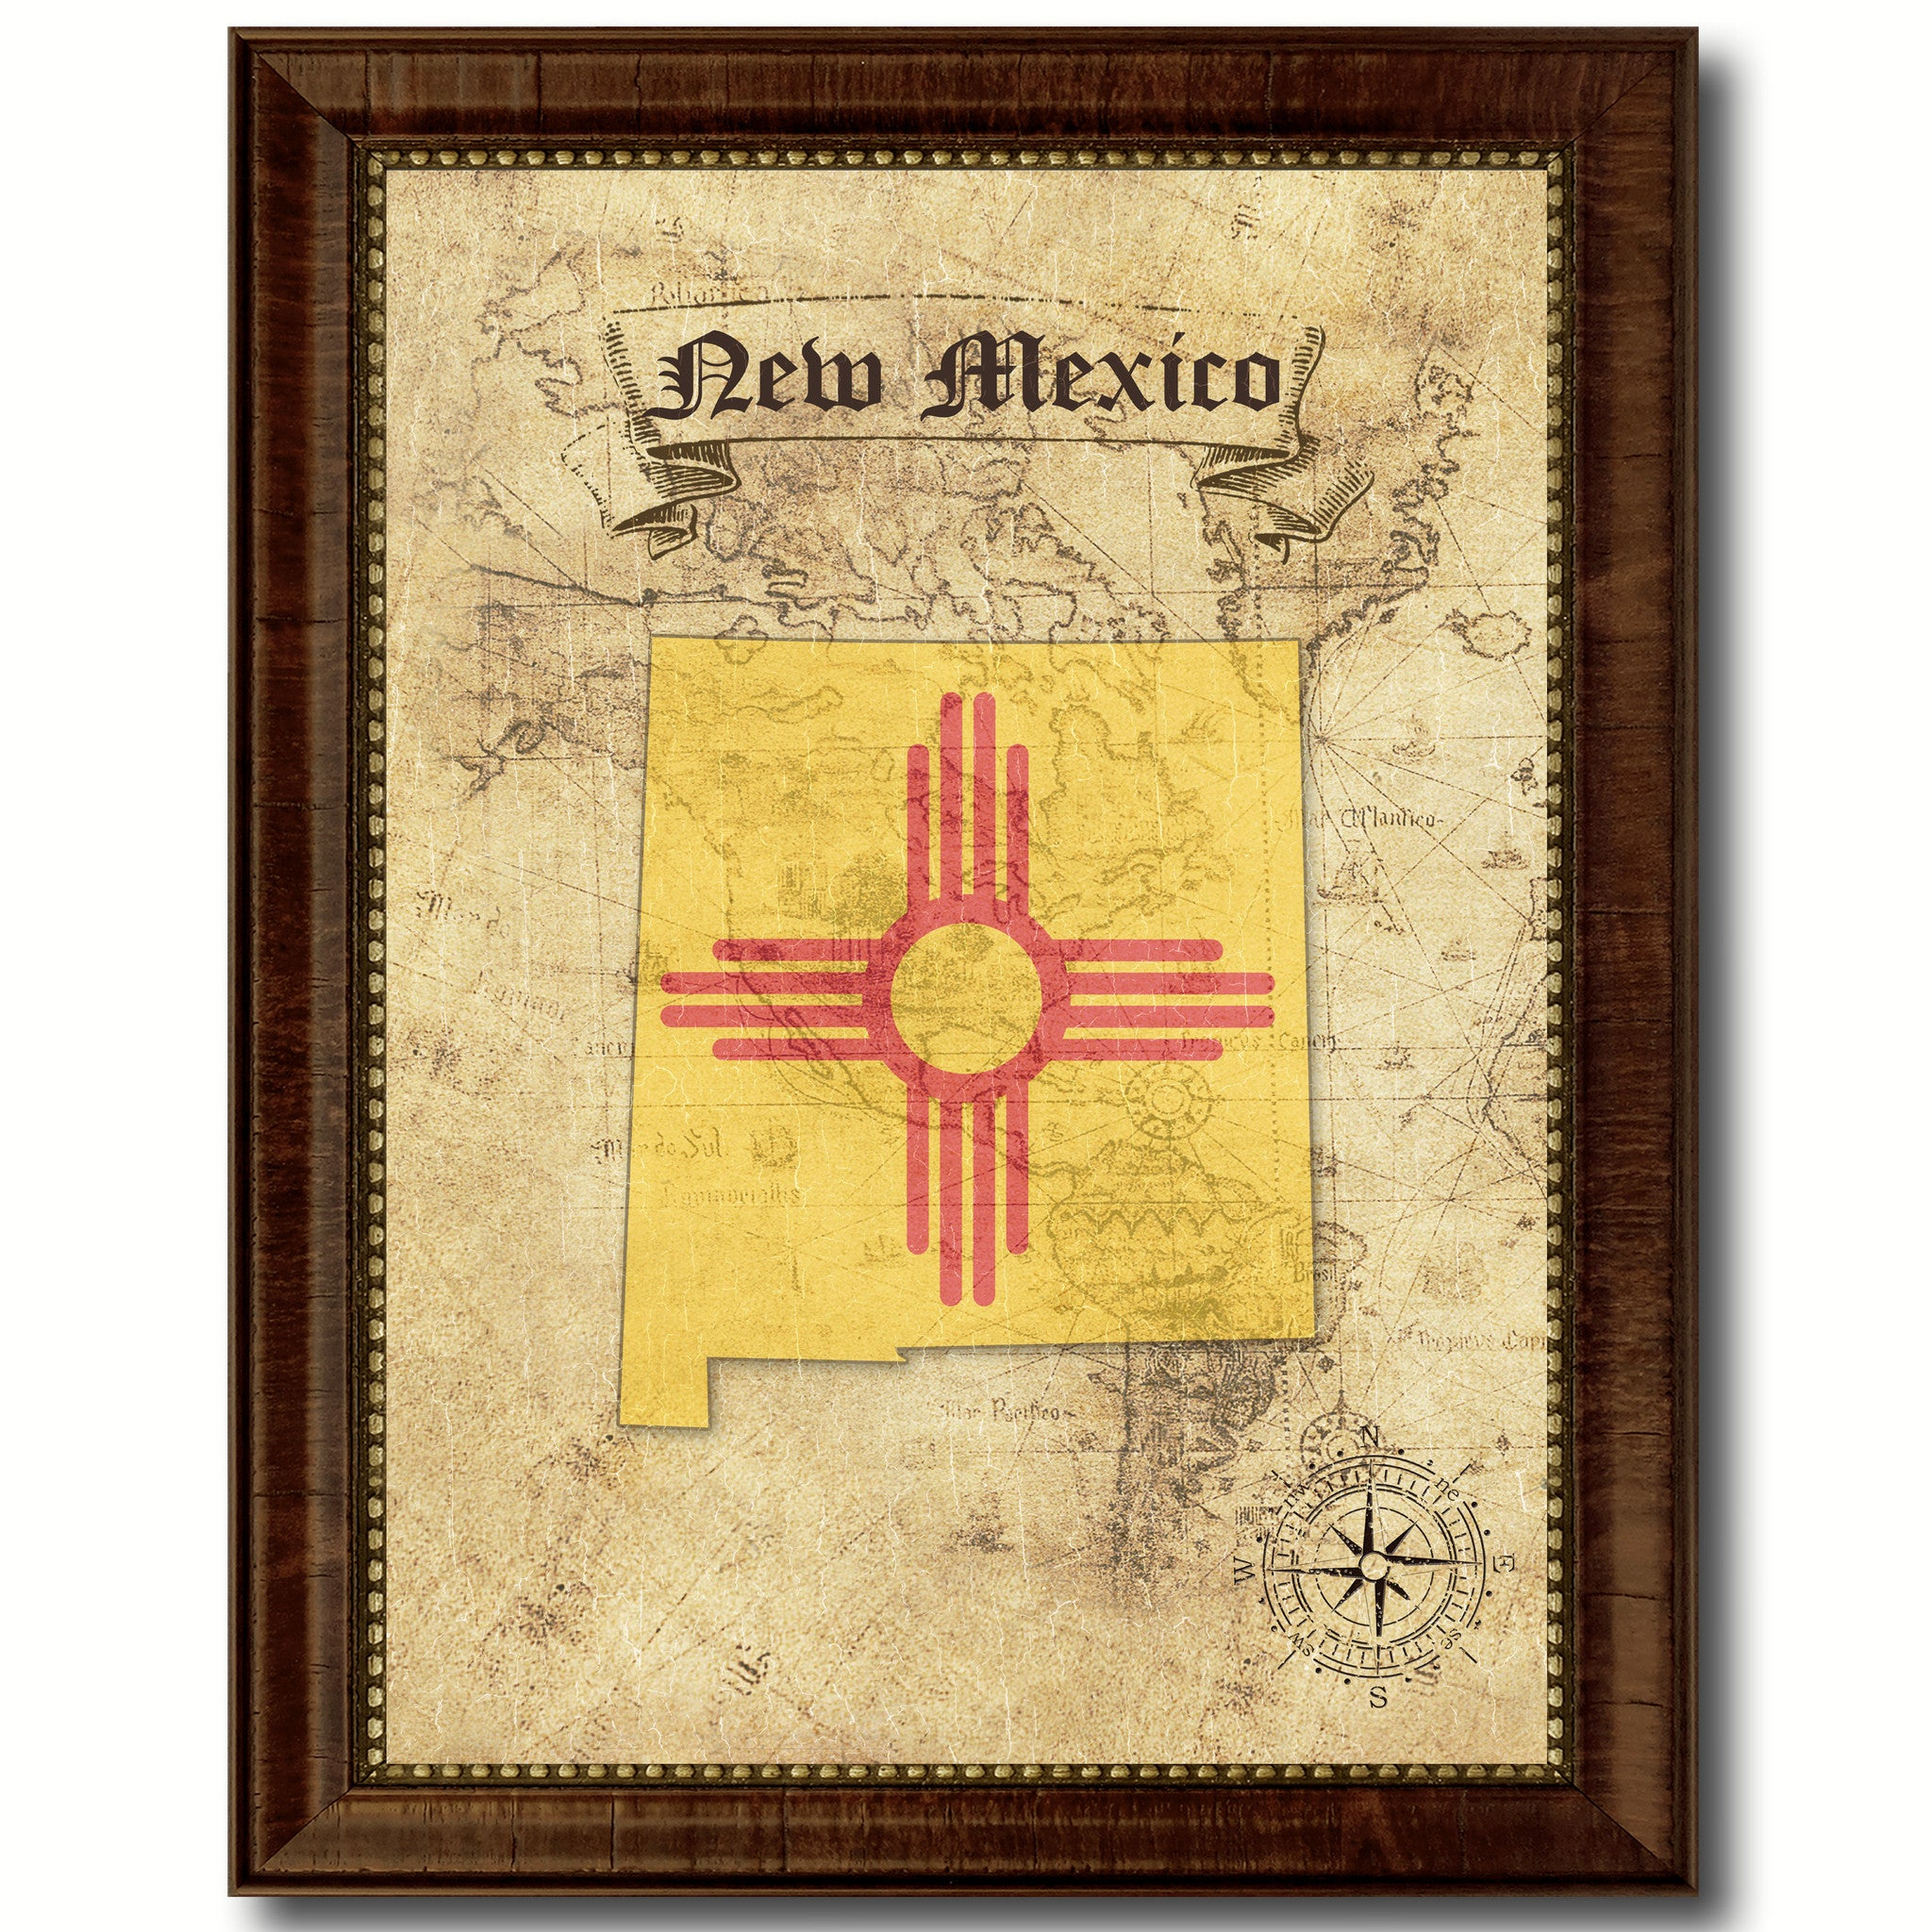 New MexicoState Vintage MapArt Office Wall Home Decor Rustic Gift ...